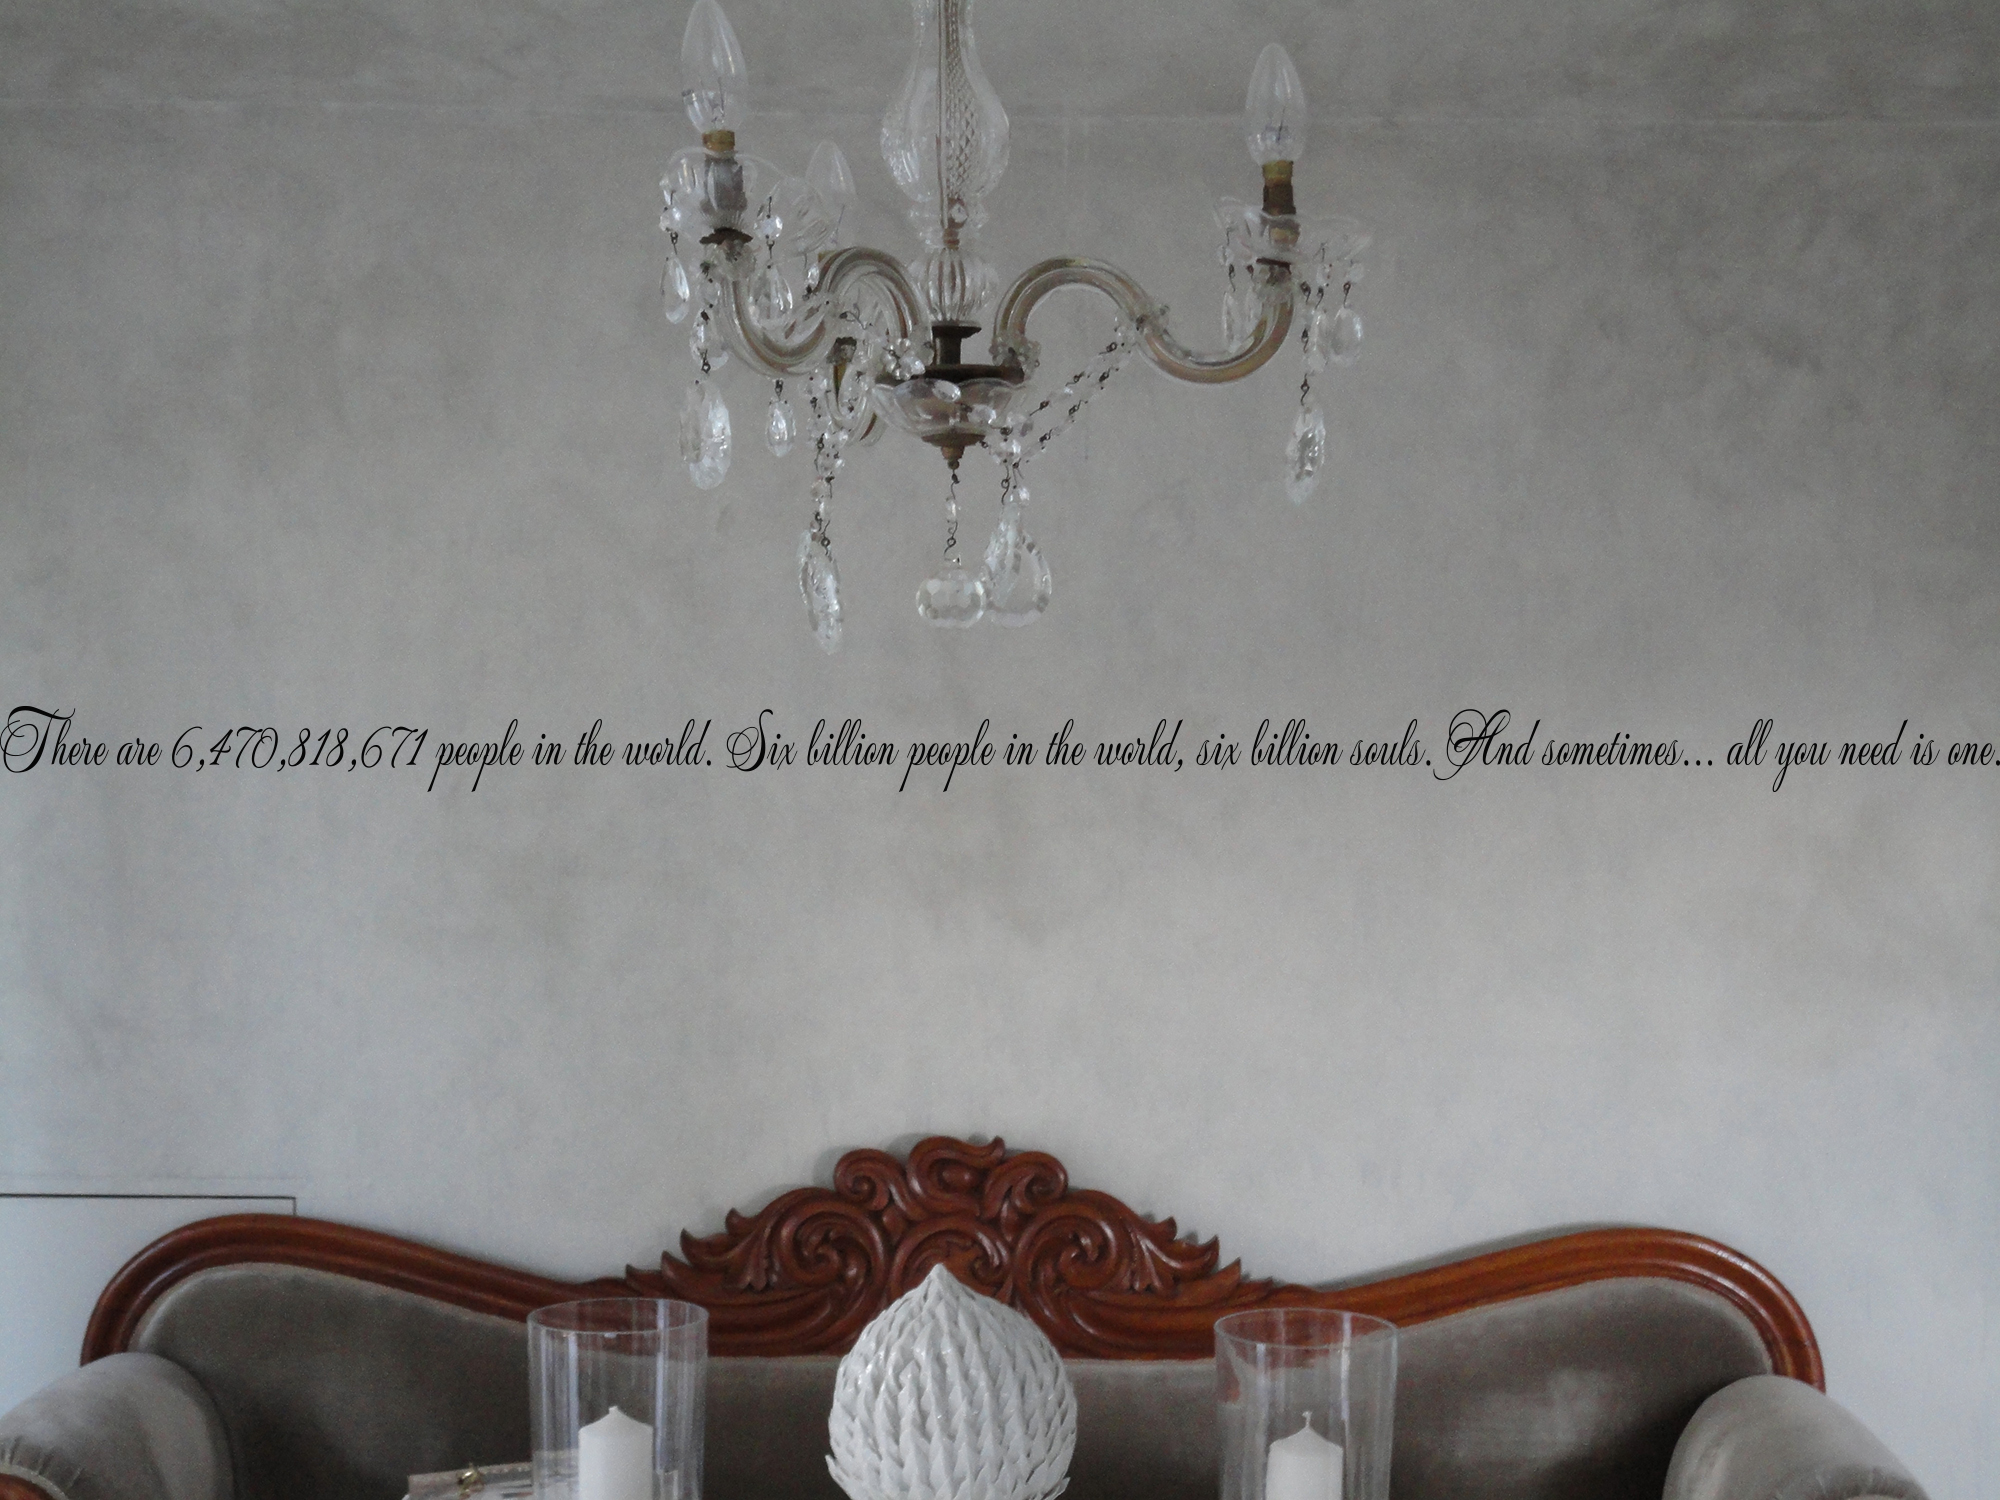 Six Billion People All You Need Is One Wall Decal